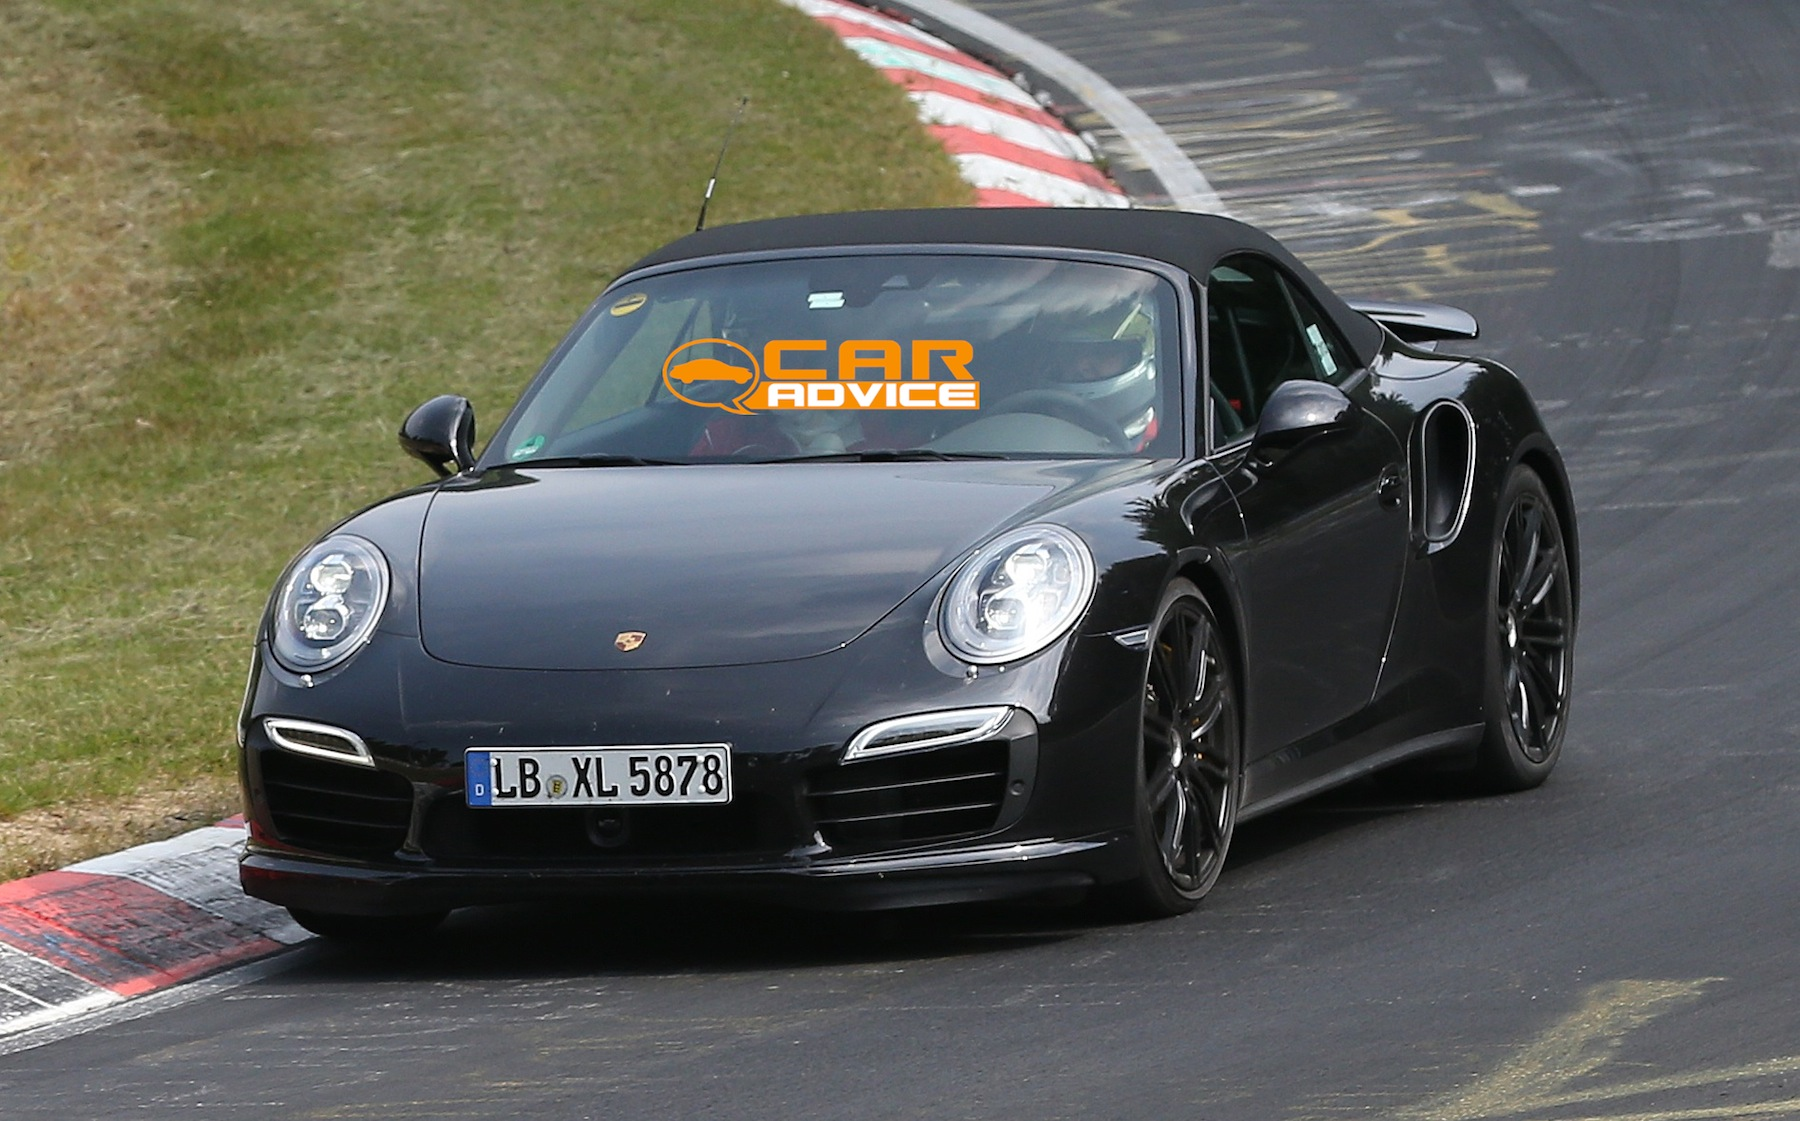 porsche 911 turbo convertible spied lapping nurburgring photos 1 of 7. Black Bedroom Furniture Sets. Home Design Ideas